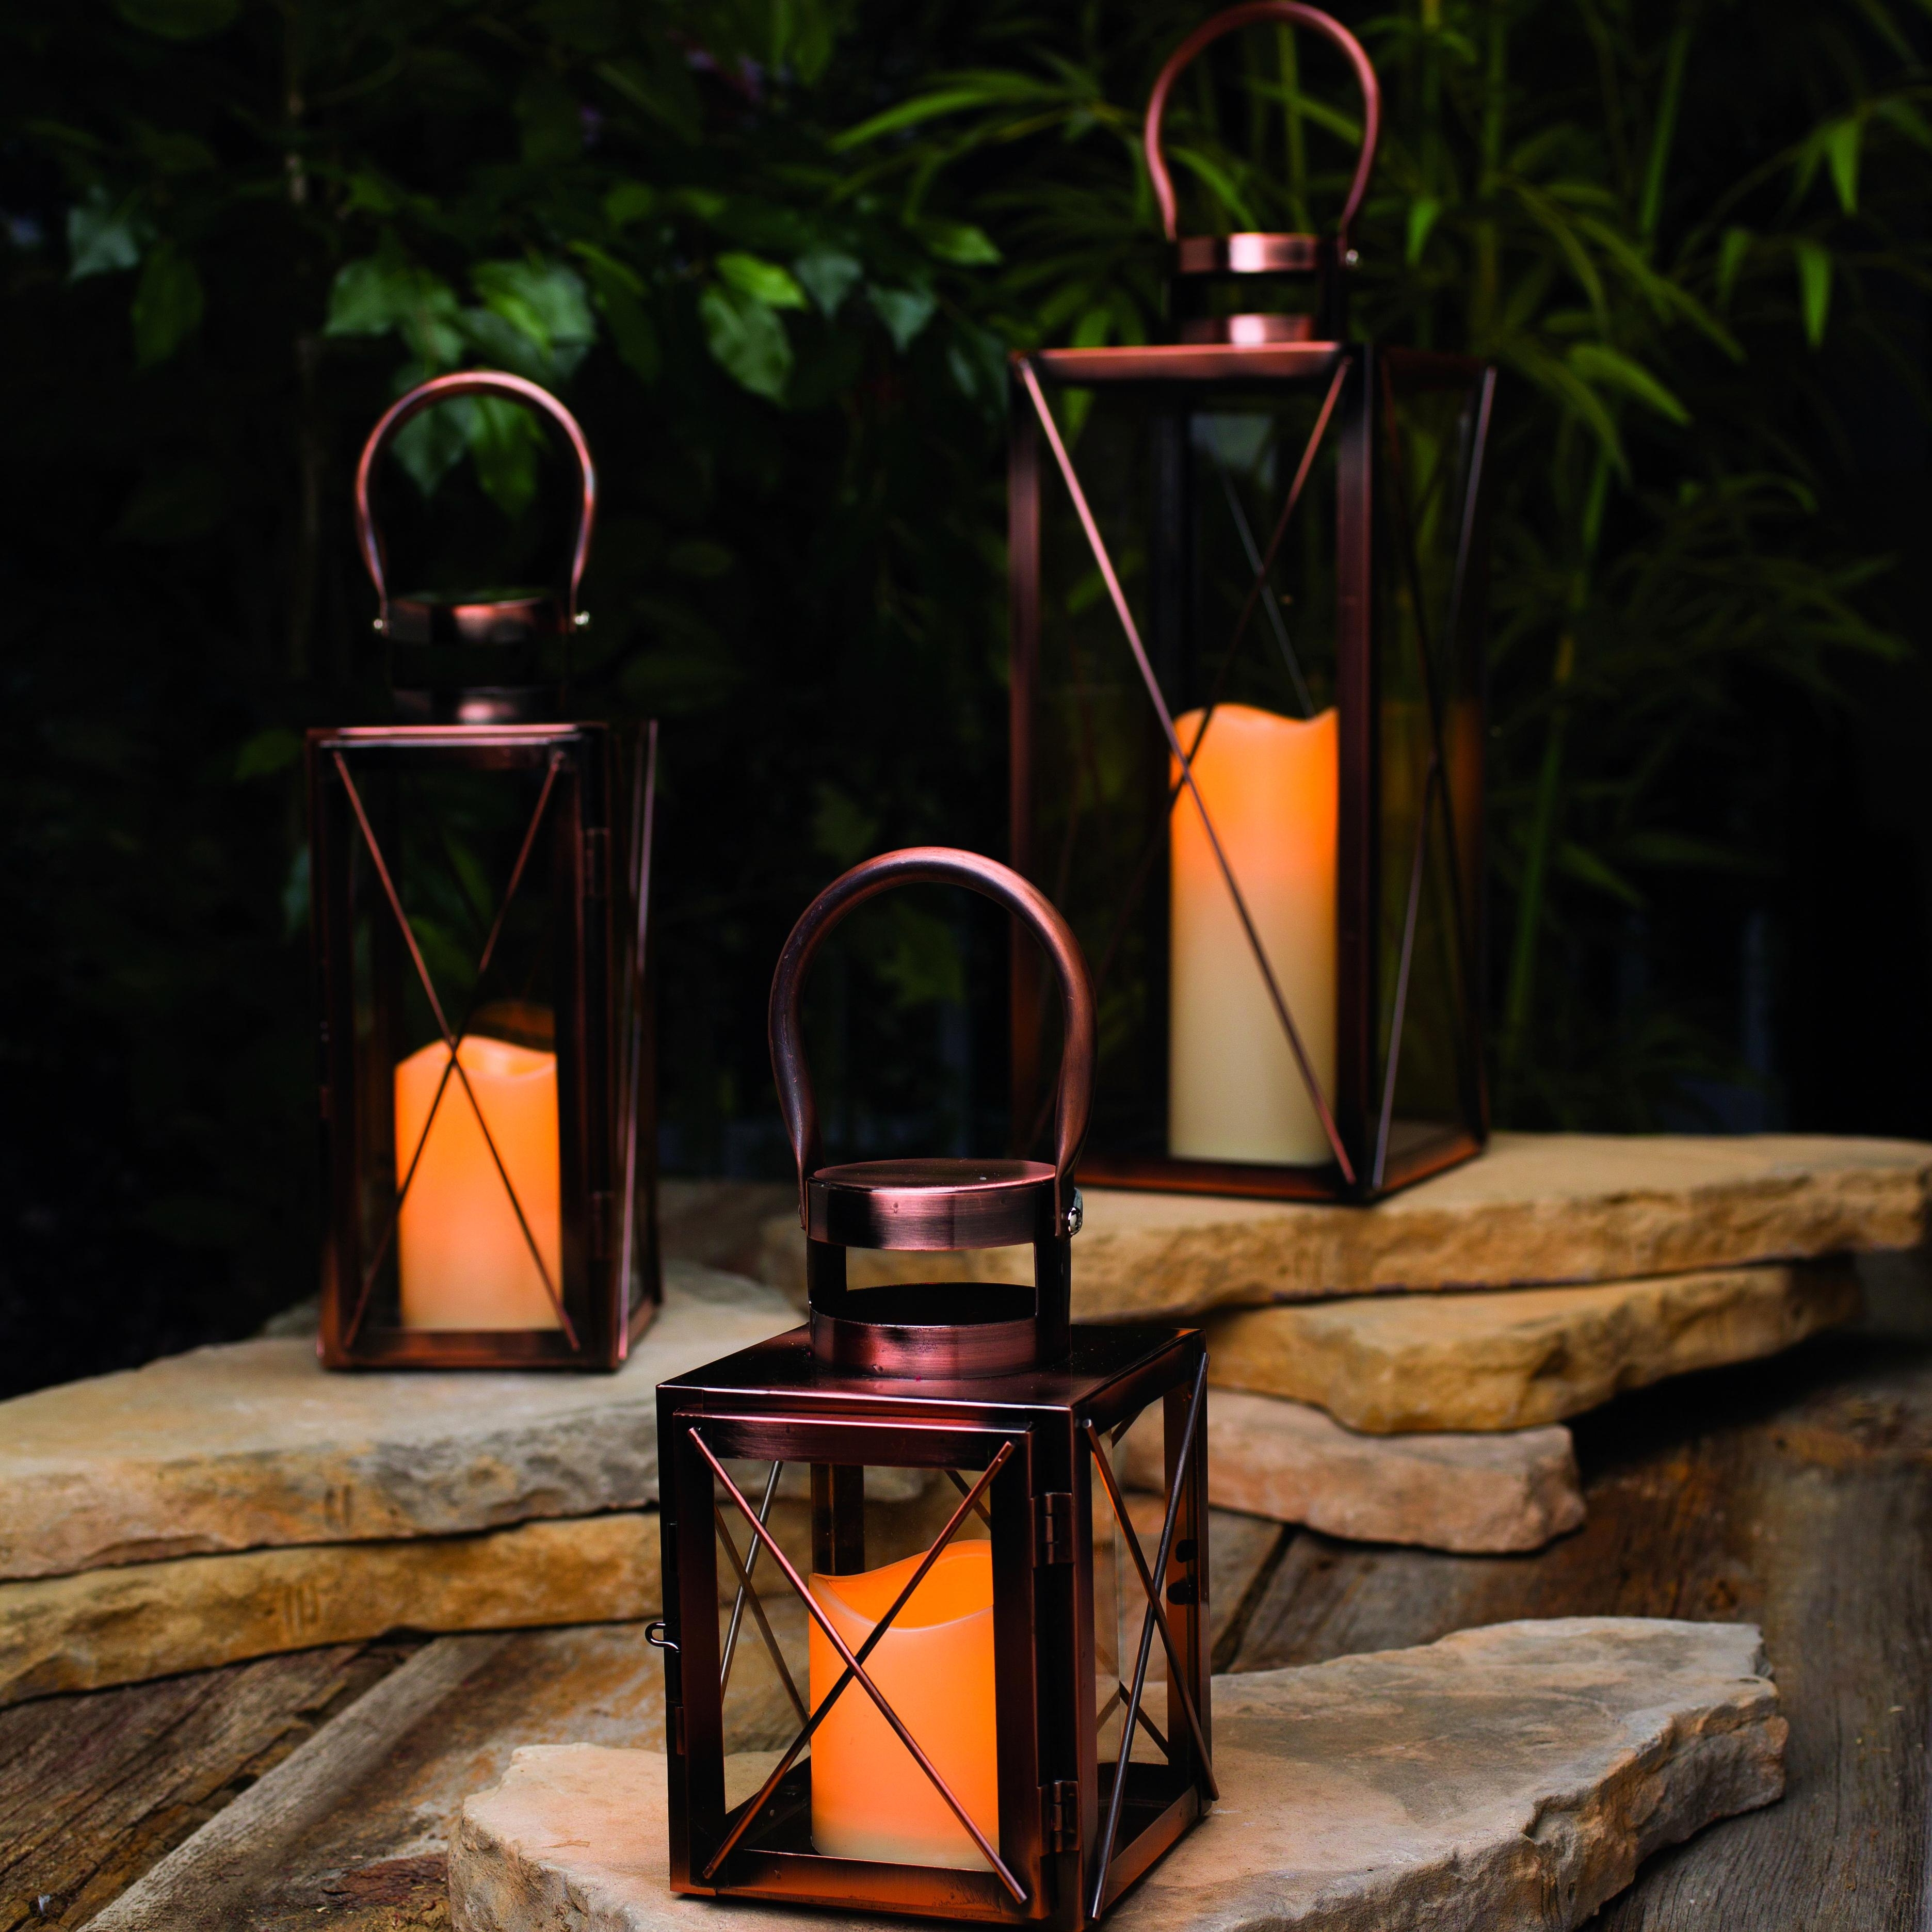 Outdoor Candle Lanterns For Patio Throughout Current Improbable Patio String Lights Complement Space Outdoor Candle (View 13 of 20)